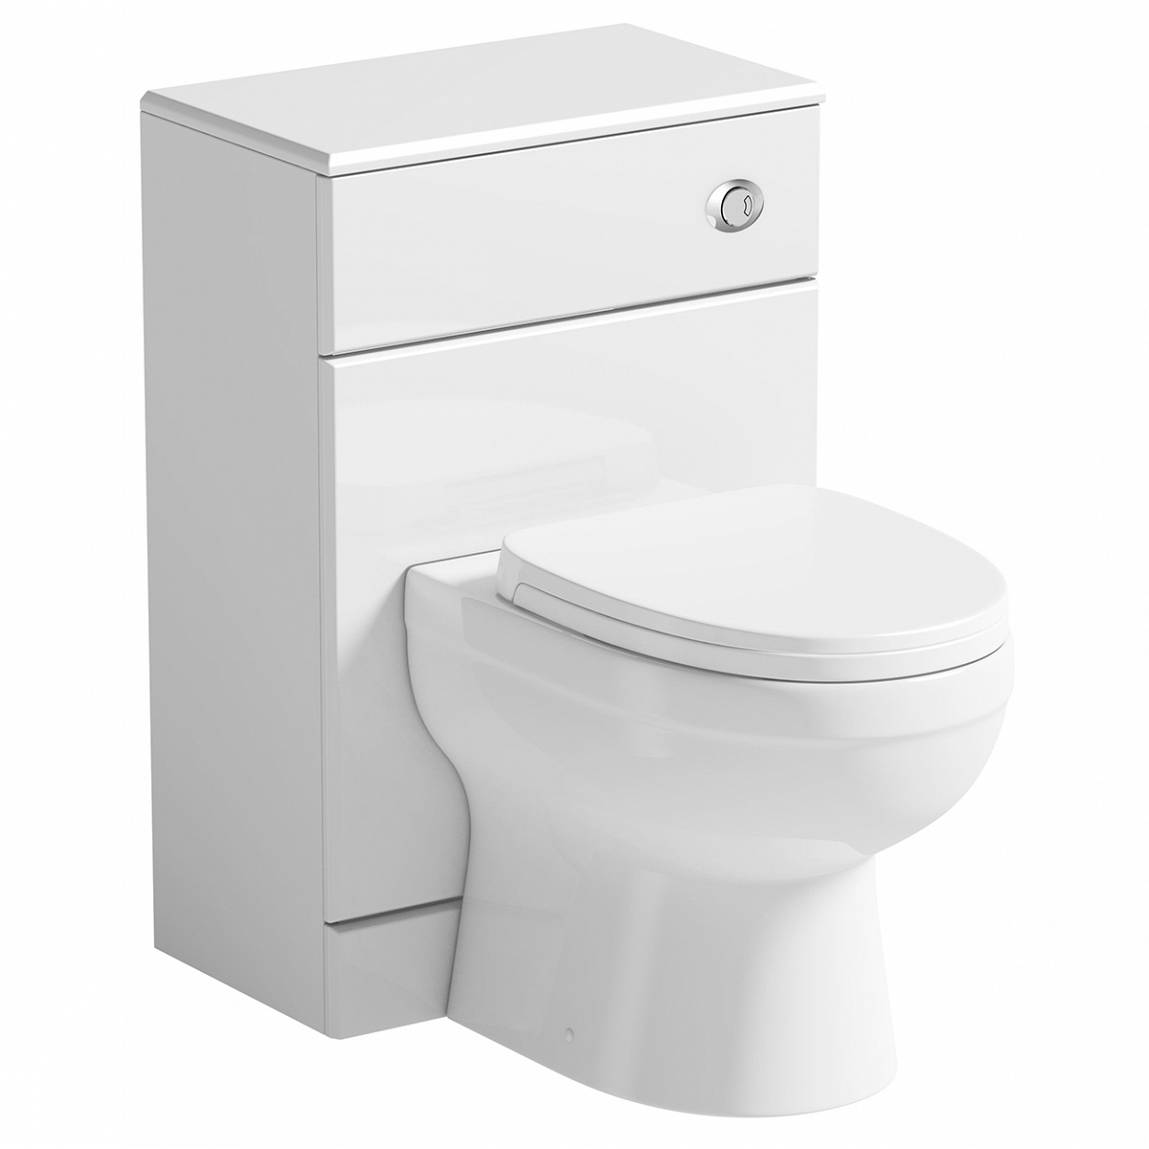 Image of Energy Back To Wall Toilet inc Seat & Unit